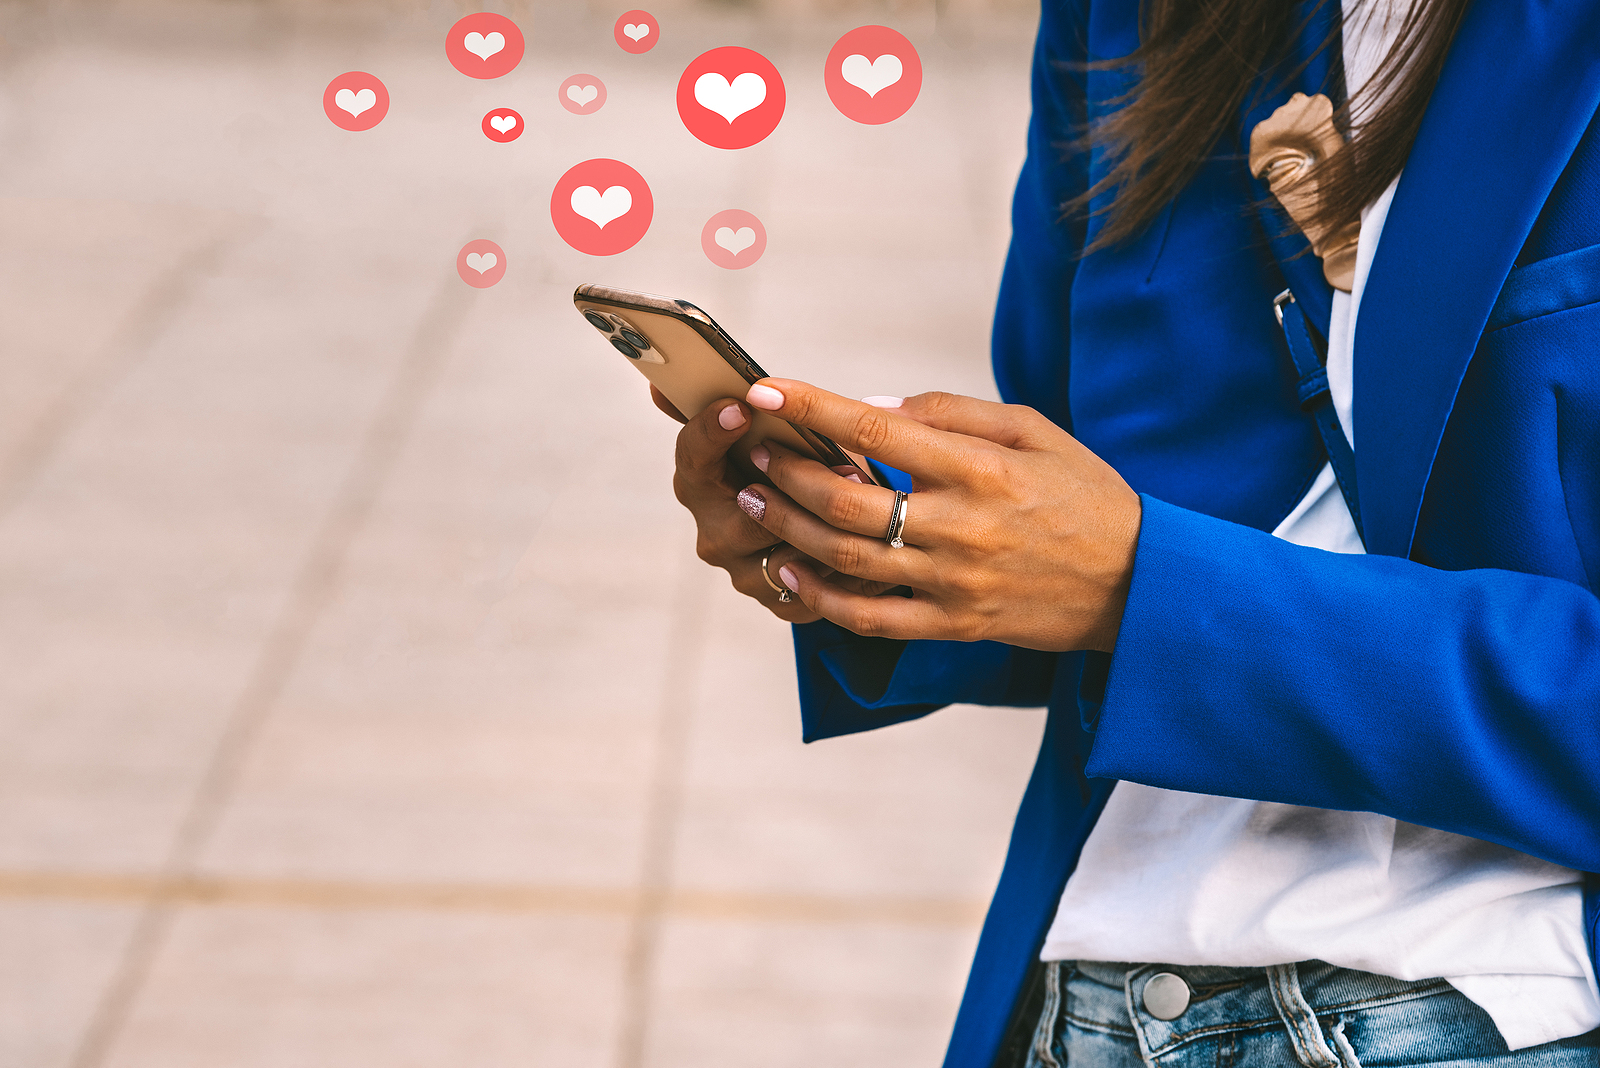 Instagram Automation: Is It Worth Trying?